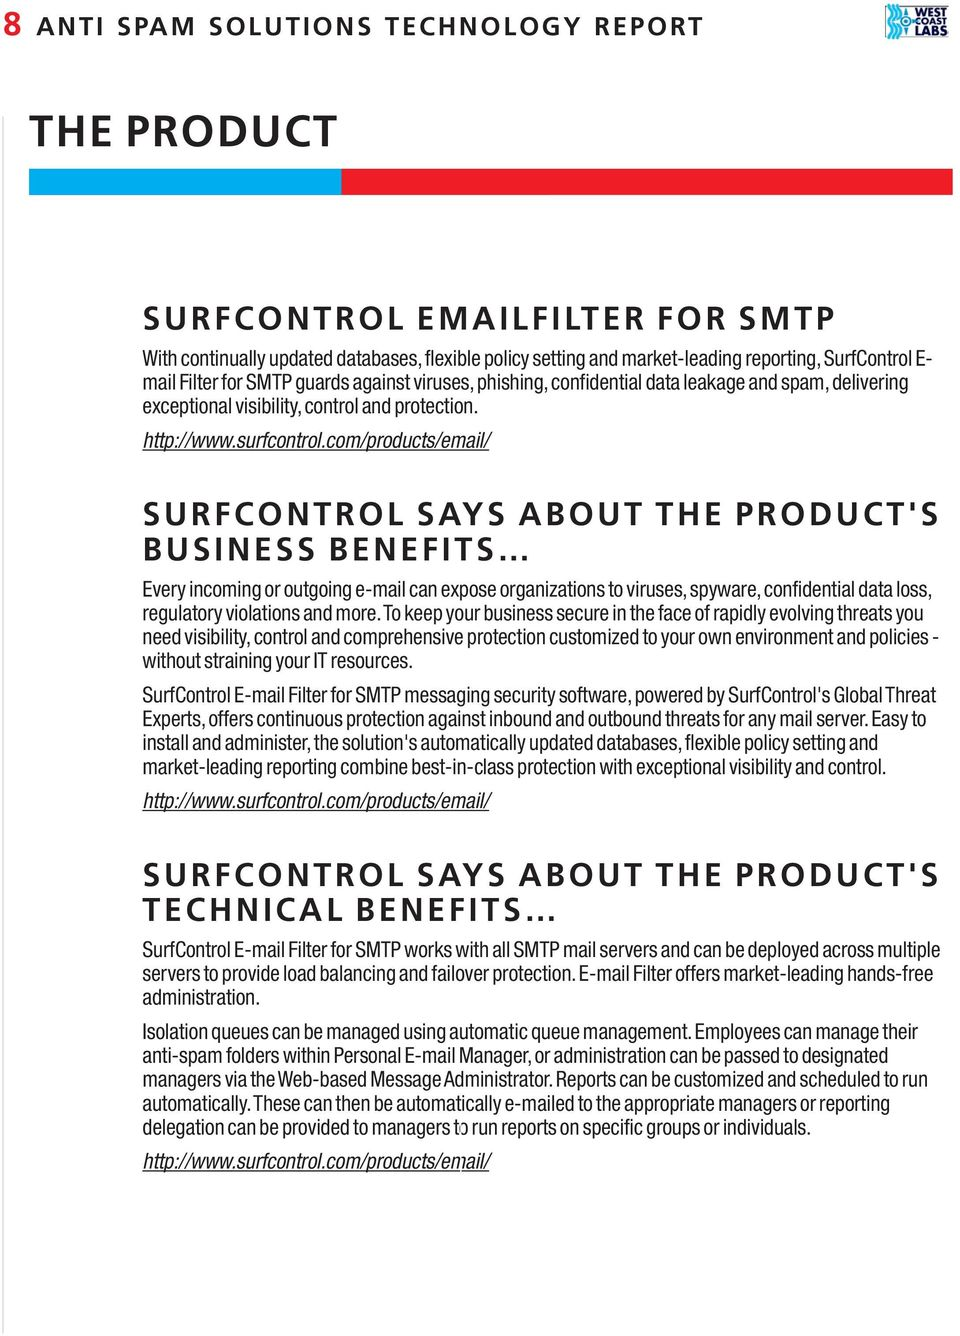 com/products/email/ SURFCONTROL SAYS ABOUT THE PRODUCT'S BUSINESS BENEFITS Every incoming or outgoing e-mail can expose organizations to viruses, spyware, confidential data loss, regulatory